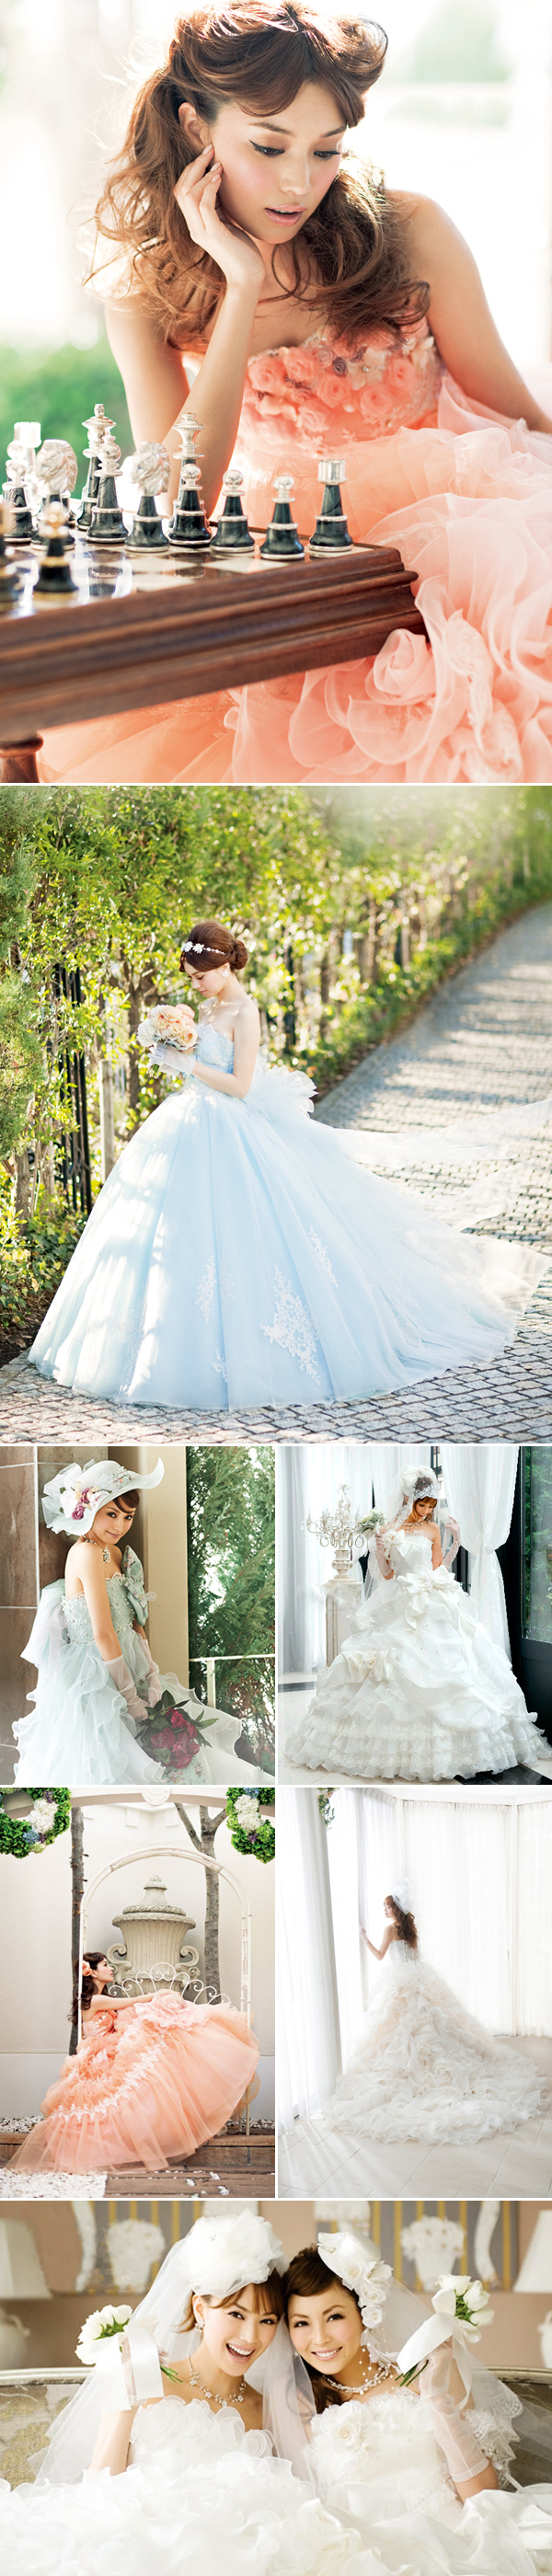 Wedding_Philippines_Beautiful_Floral_Inspired_Wedding_Dresses_A-Liliale-Colorful-Wedding-Dresses-with-Floral-Details